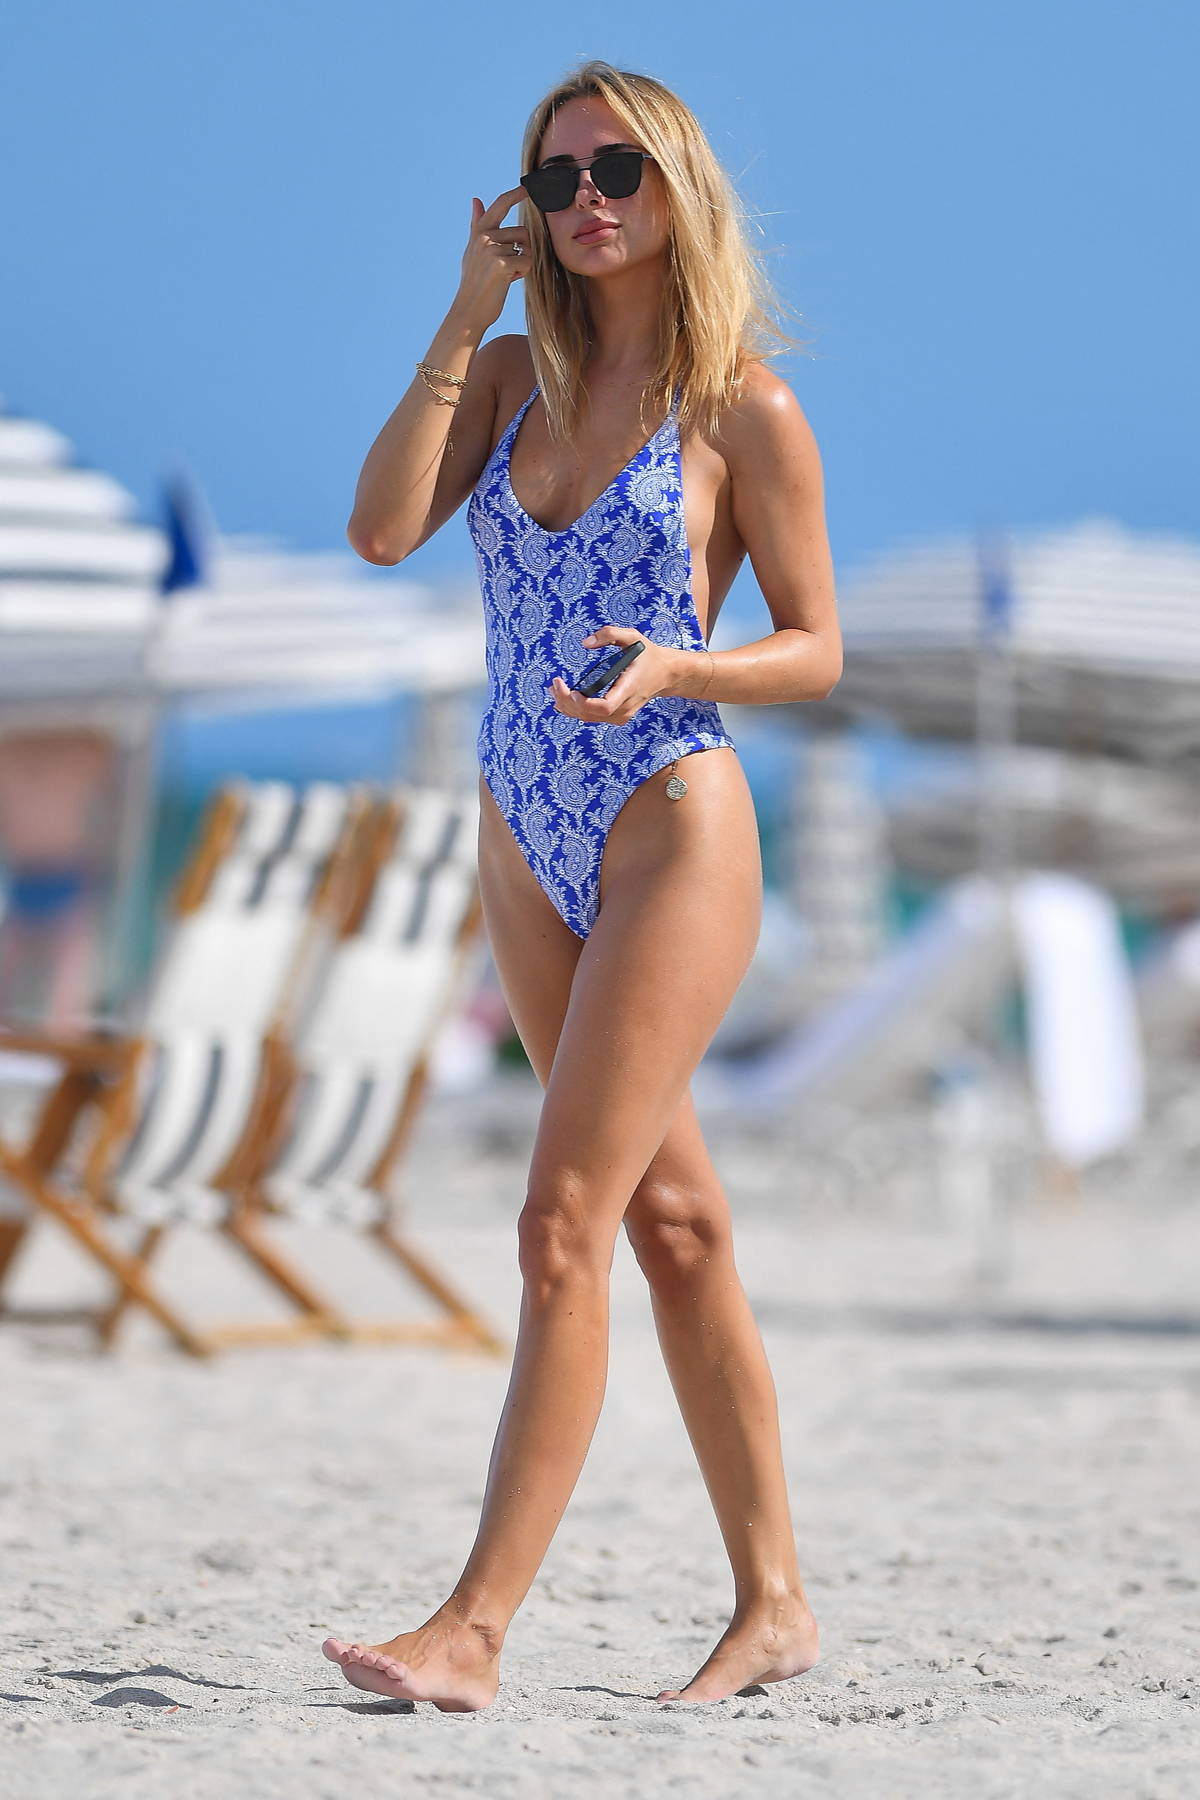 Kimberley Garner shows off her perfectly toned figure in a patterned blue swimsuit while enjoying the beach in Miami, Florida